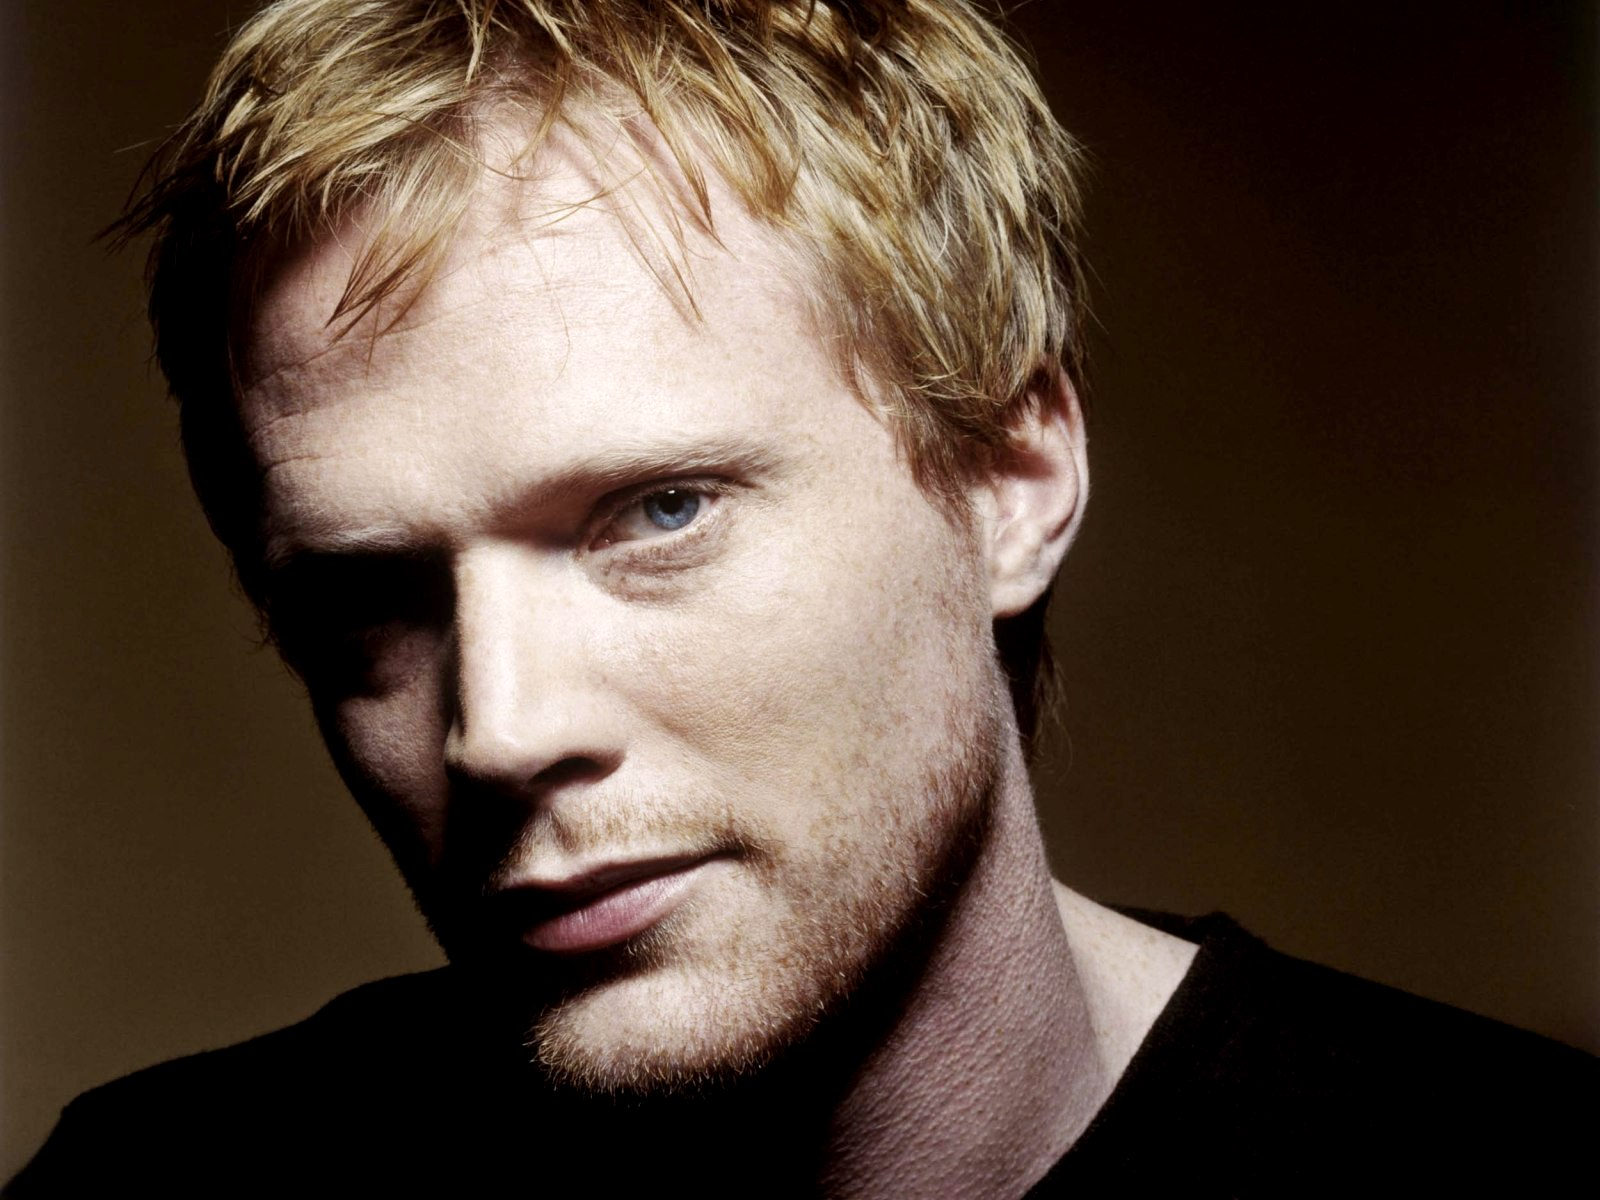 pictures Paul Bettany (born 1971)